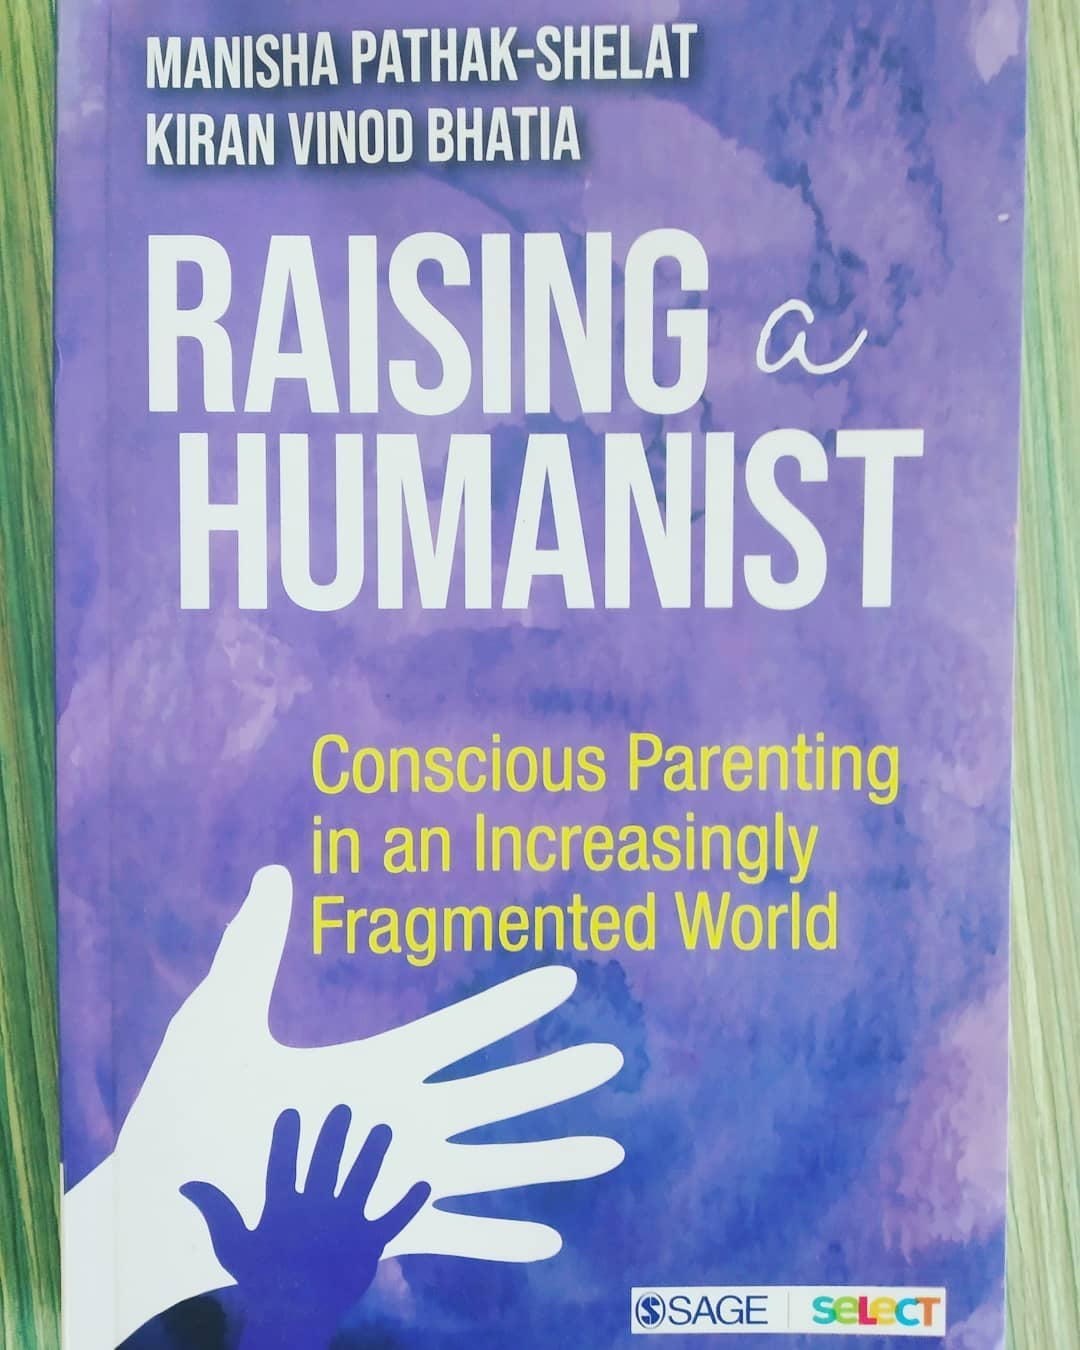 Review: Raising a Humanist